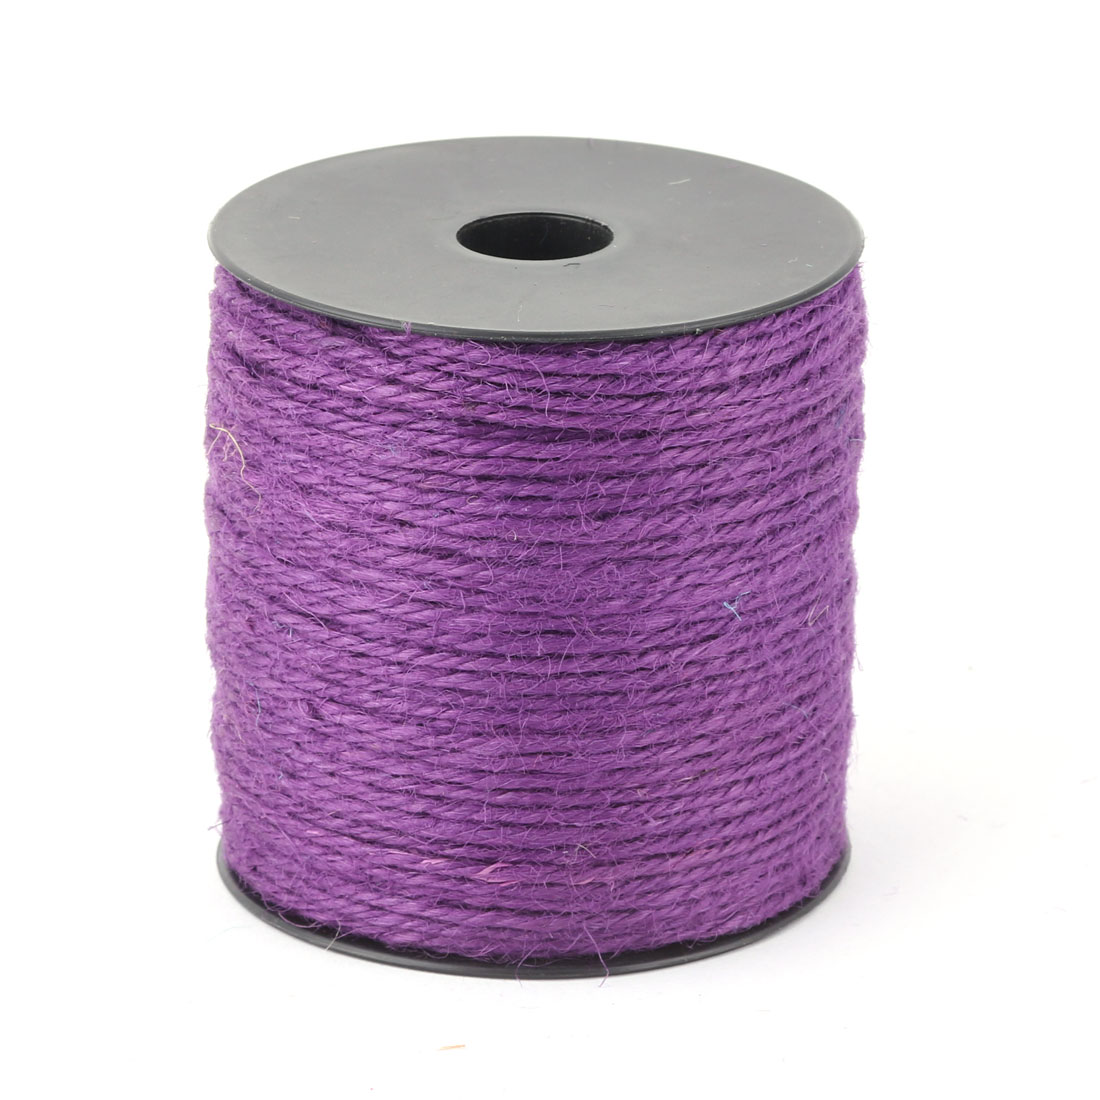 Wedding Decor Gift Wrapping Burlap String Twine Ribbon Roll Purple 100M Length